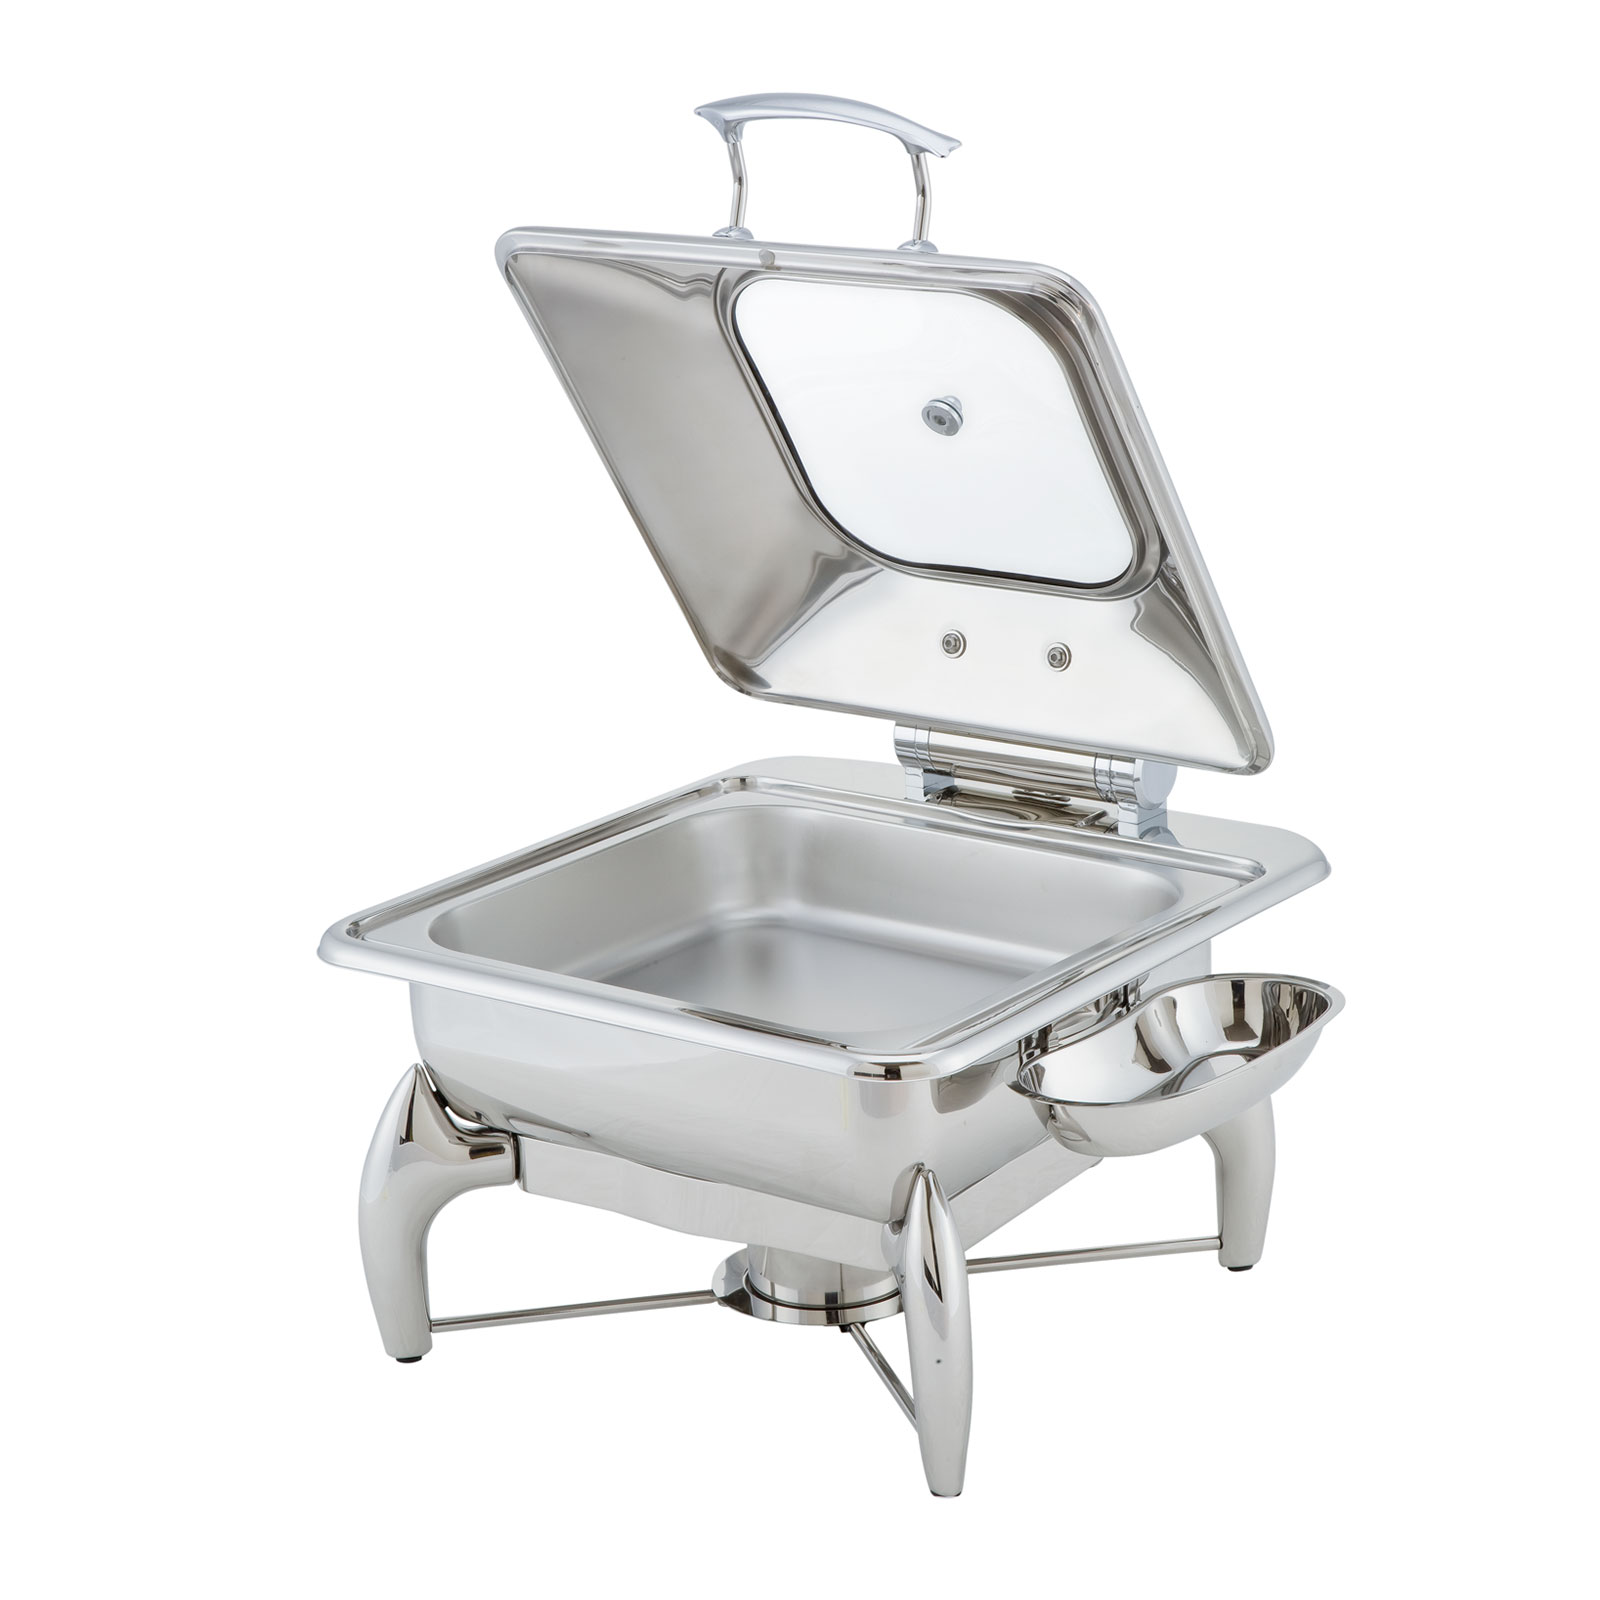 Walco Stainless WI55LGL chafing dish